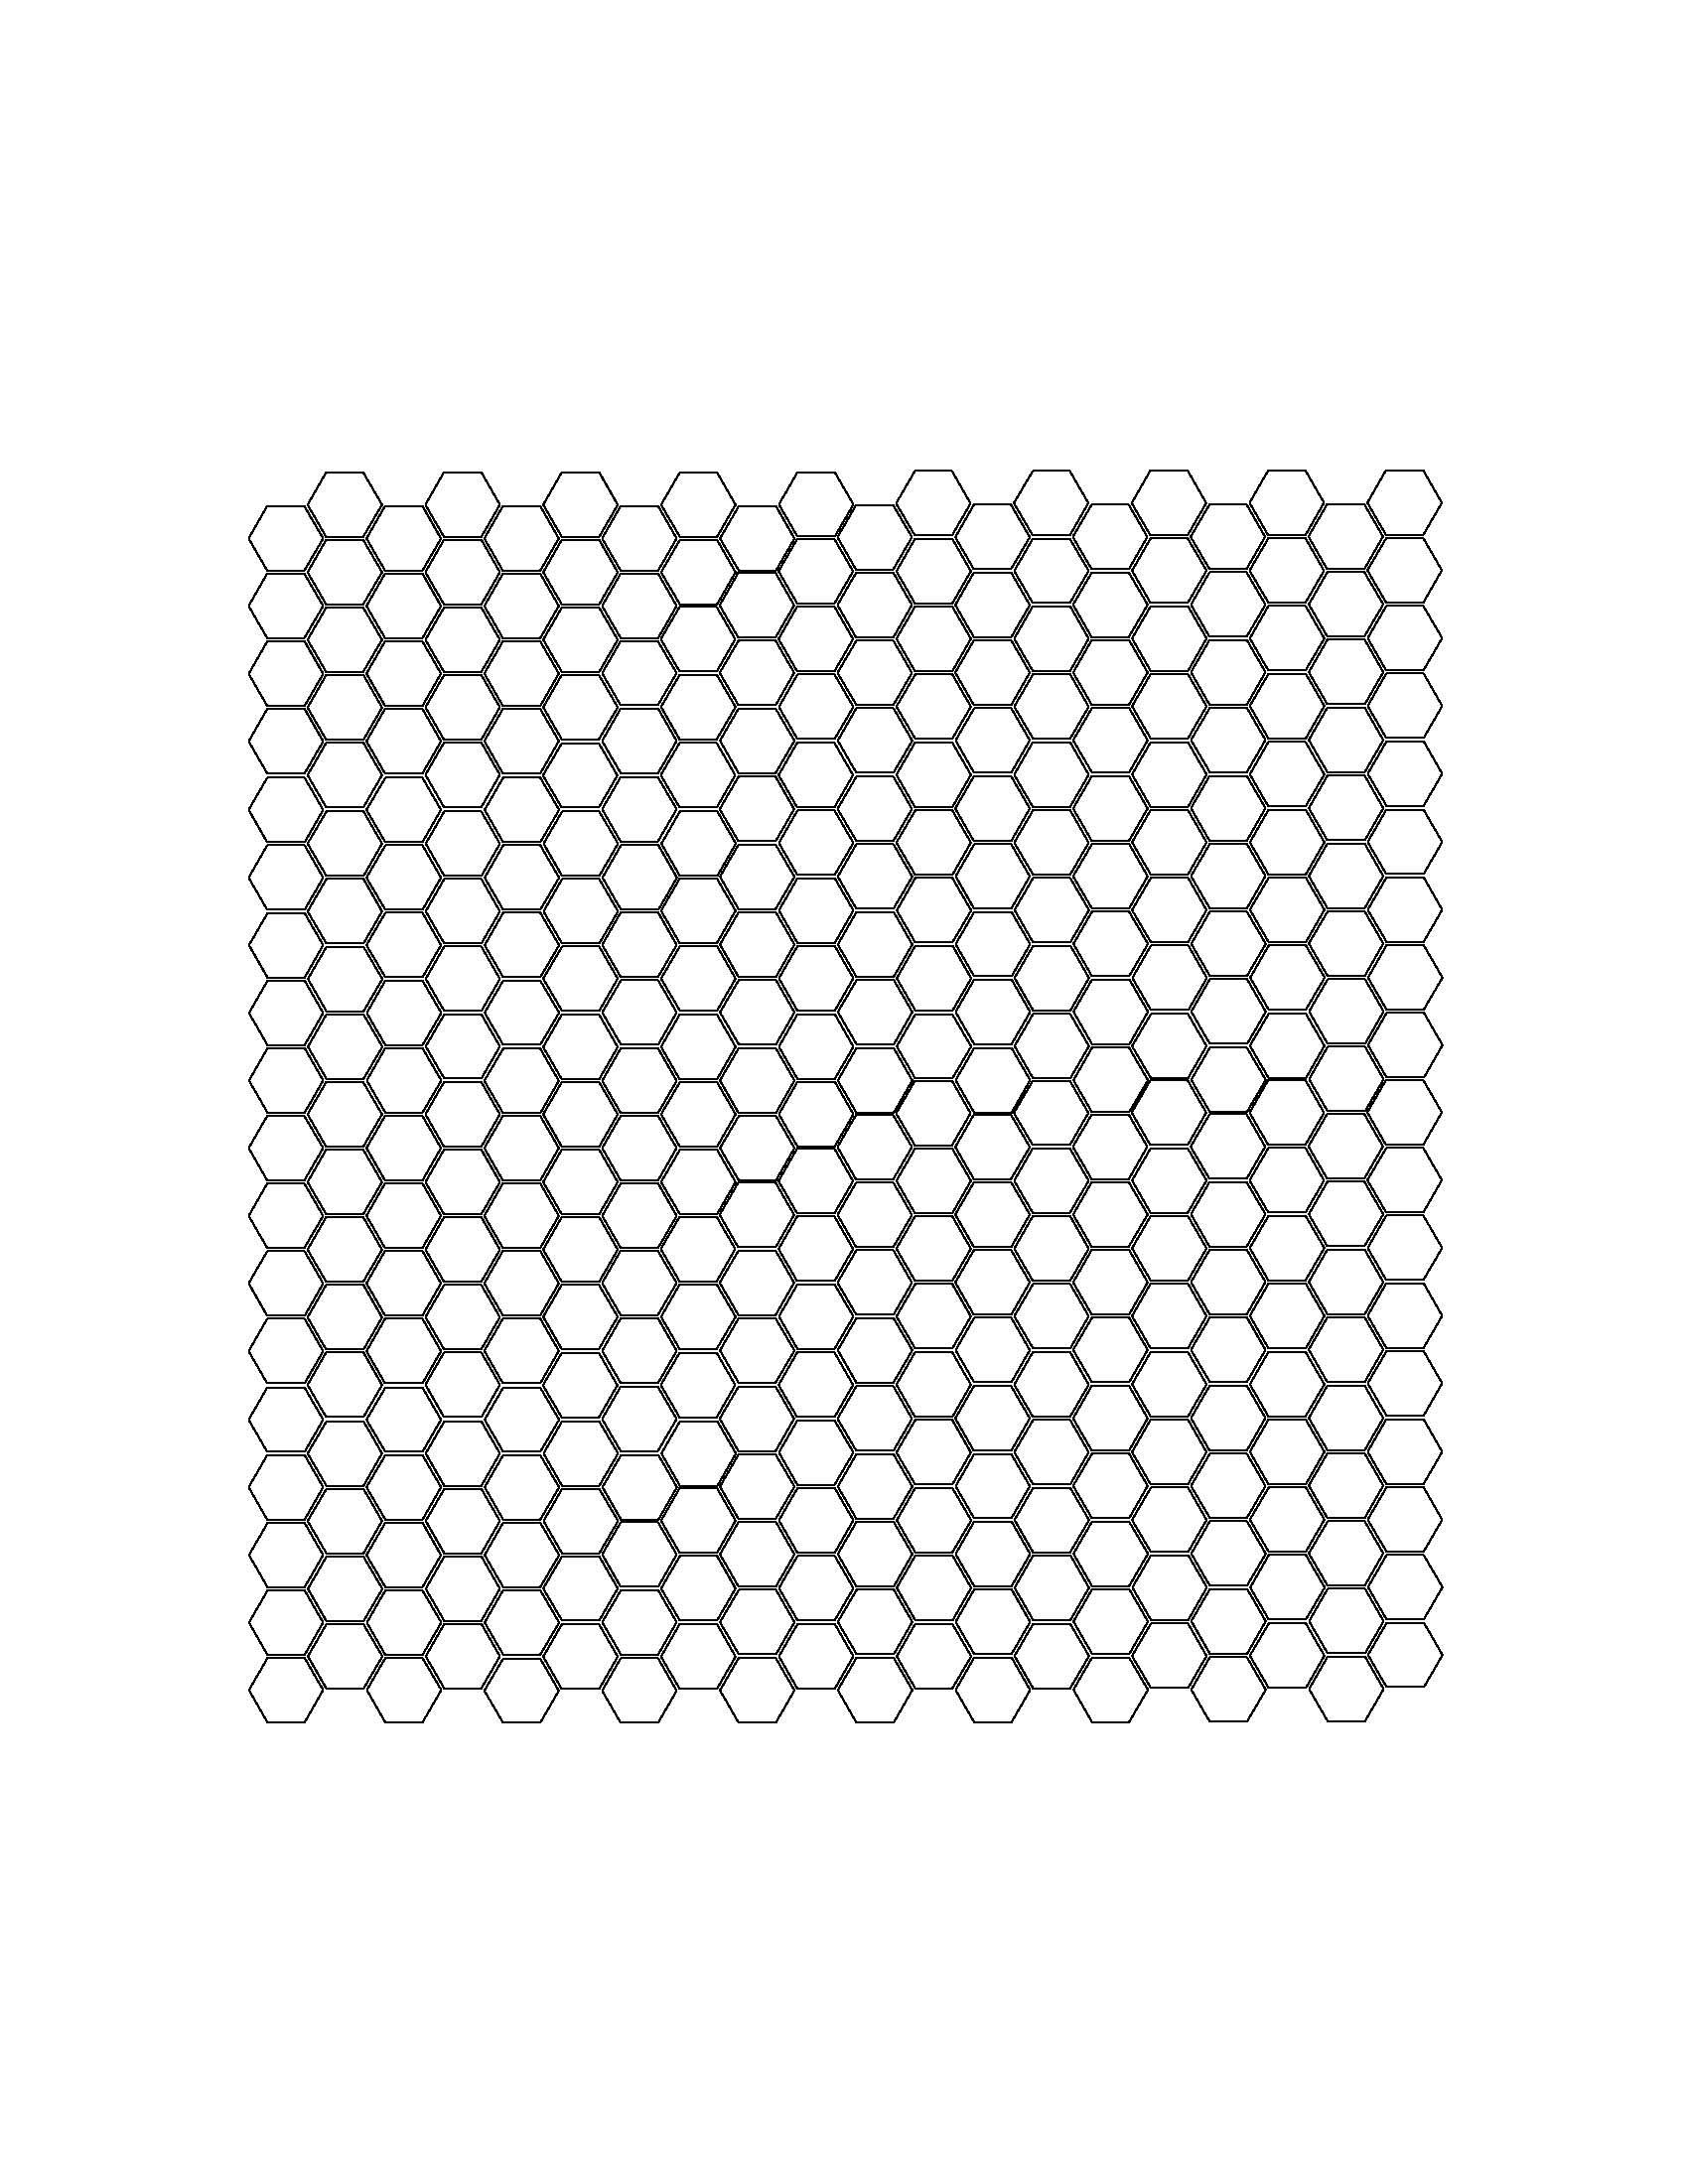 Hex Tile Template